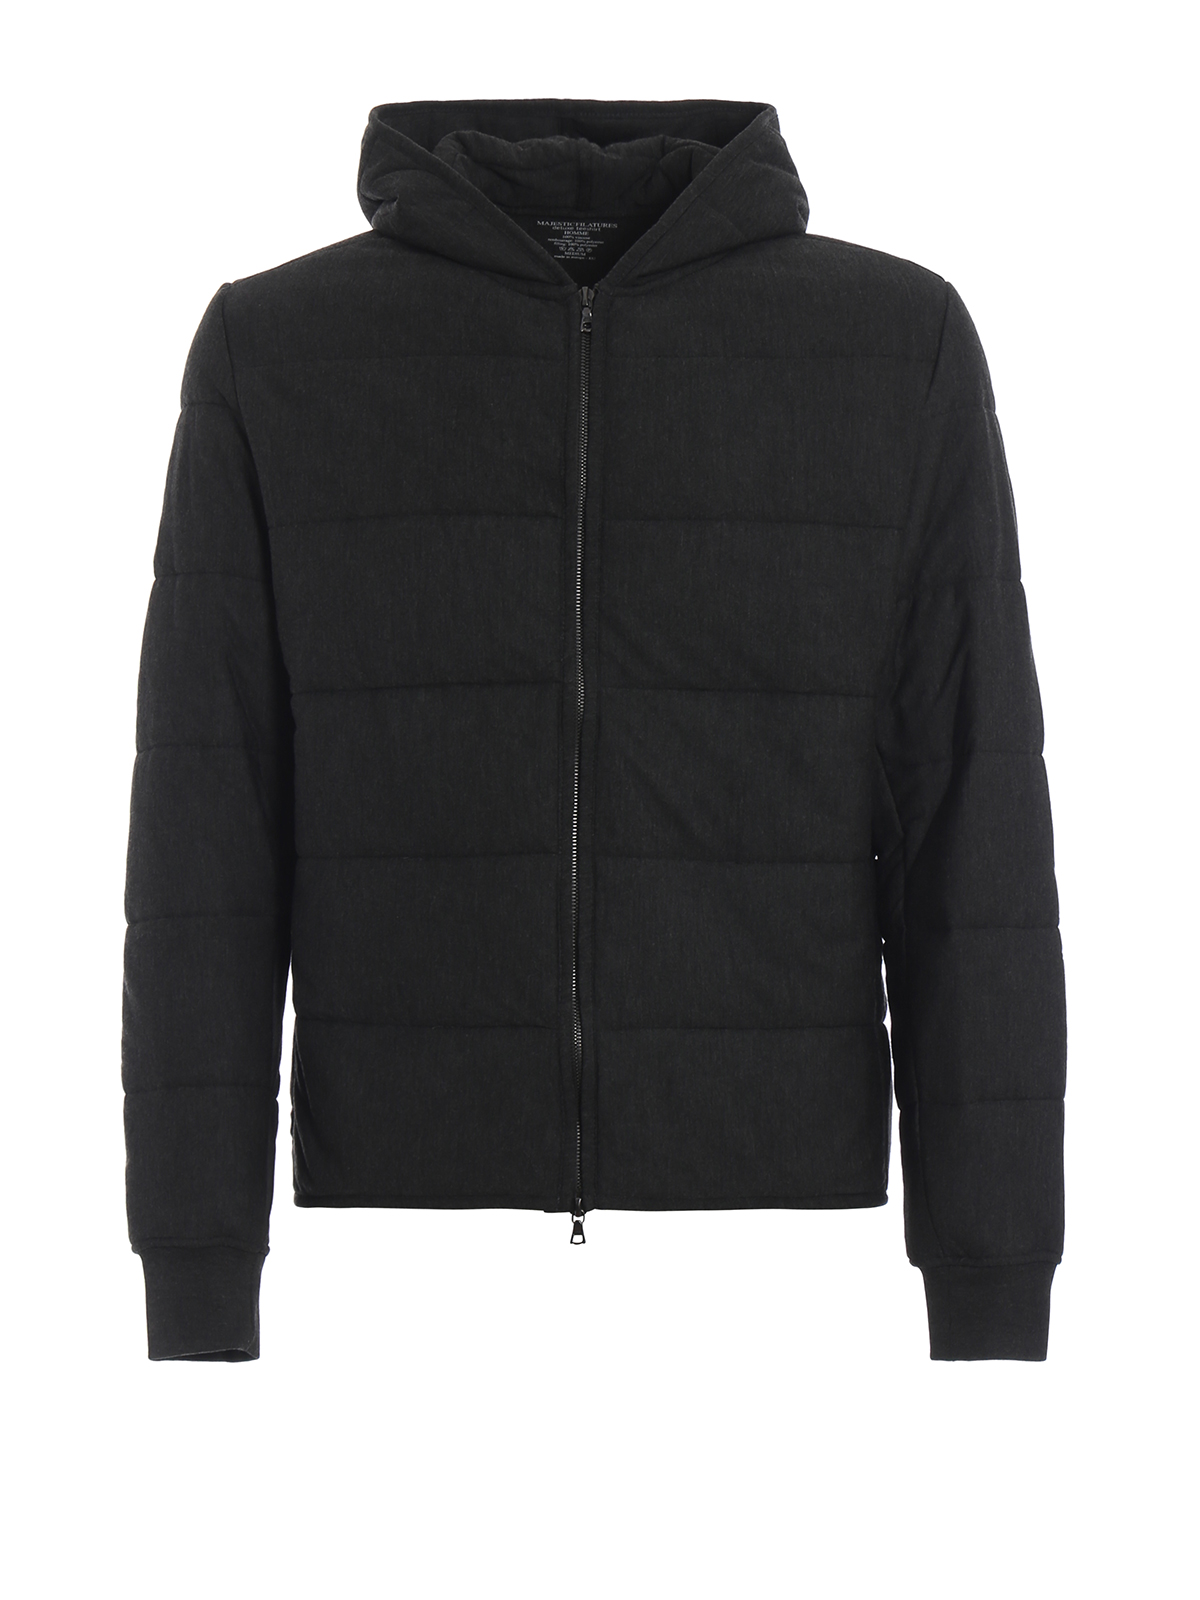 Charcoal slightly padded hooded sweat jacket